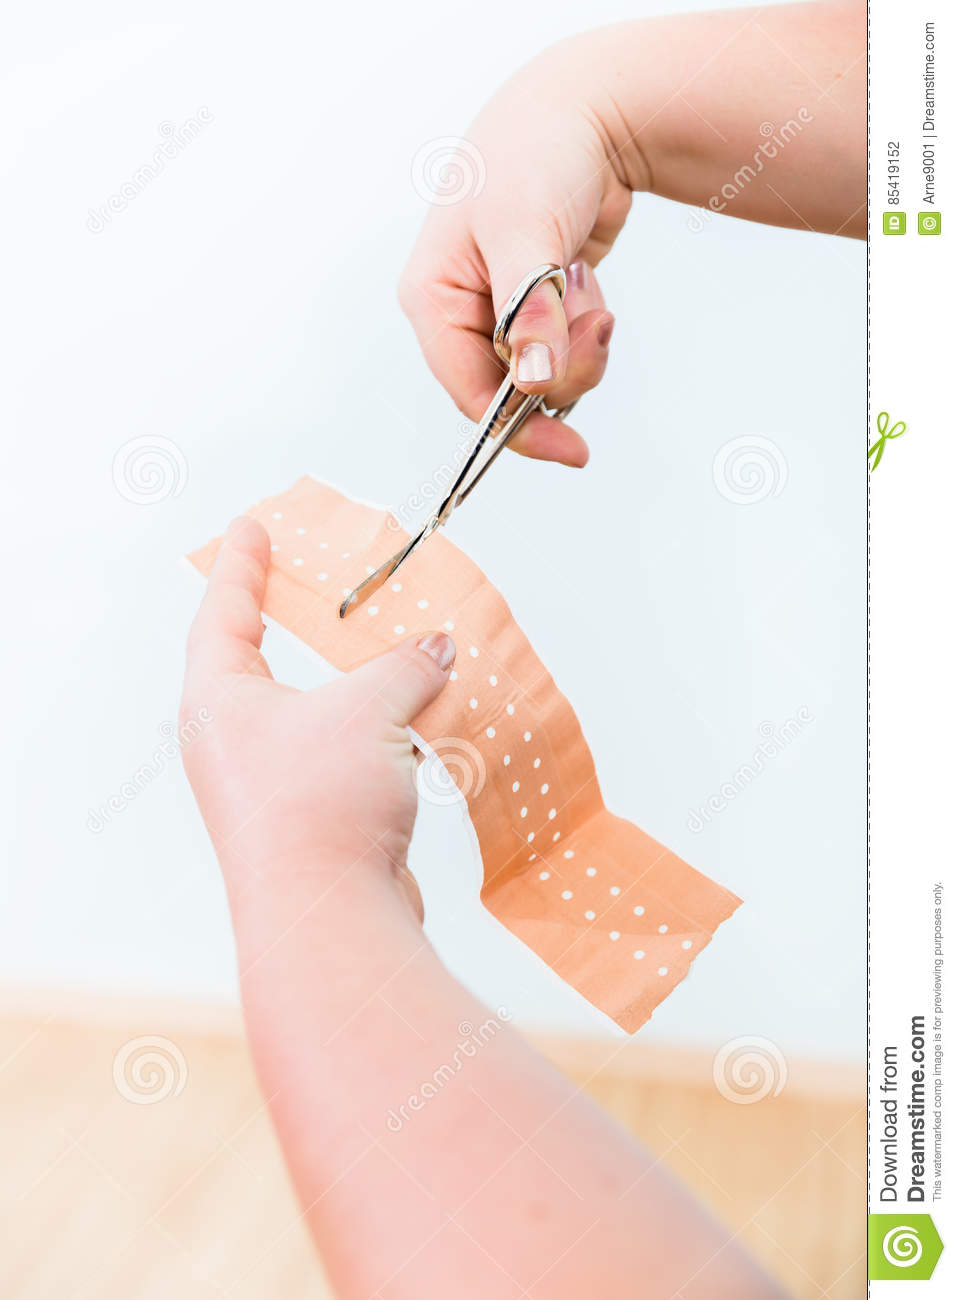 In First aid class, Cutting of patch for smaller lesions